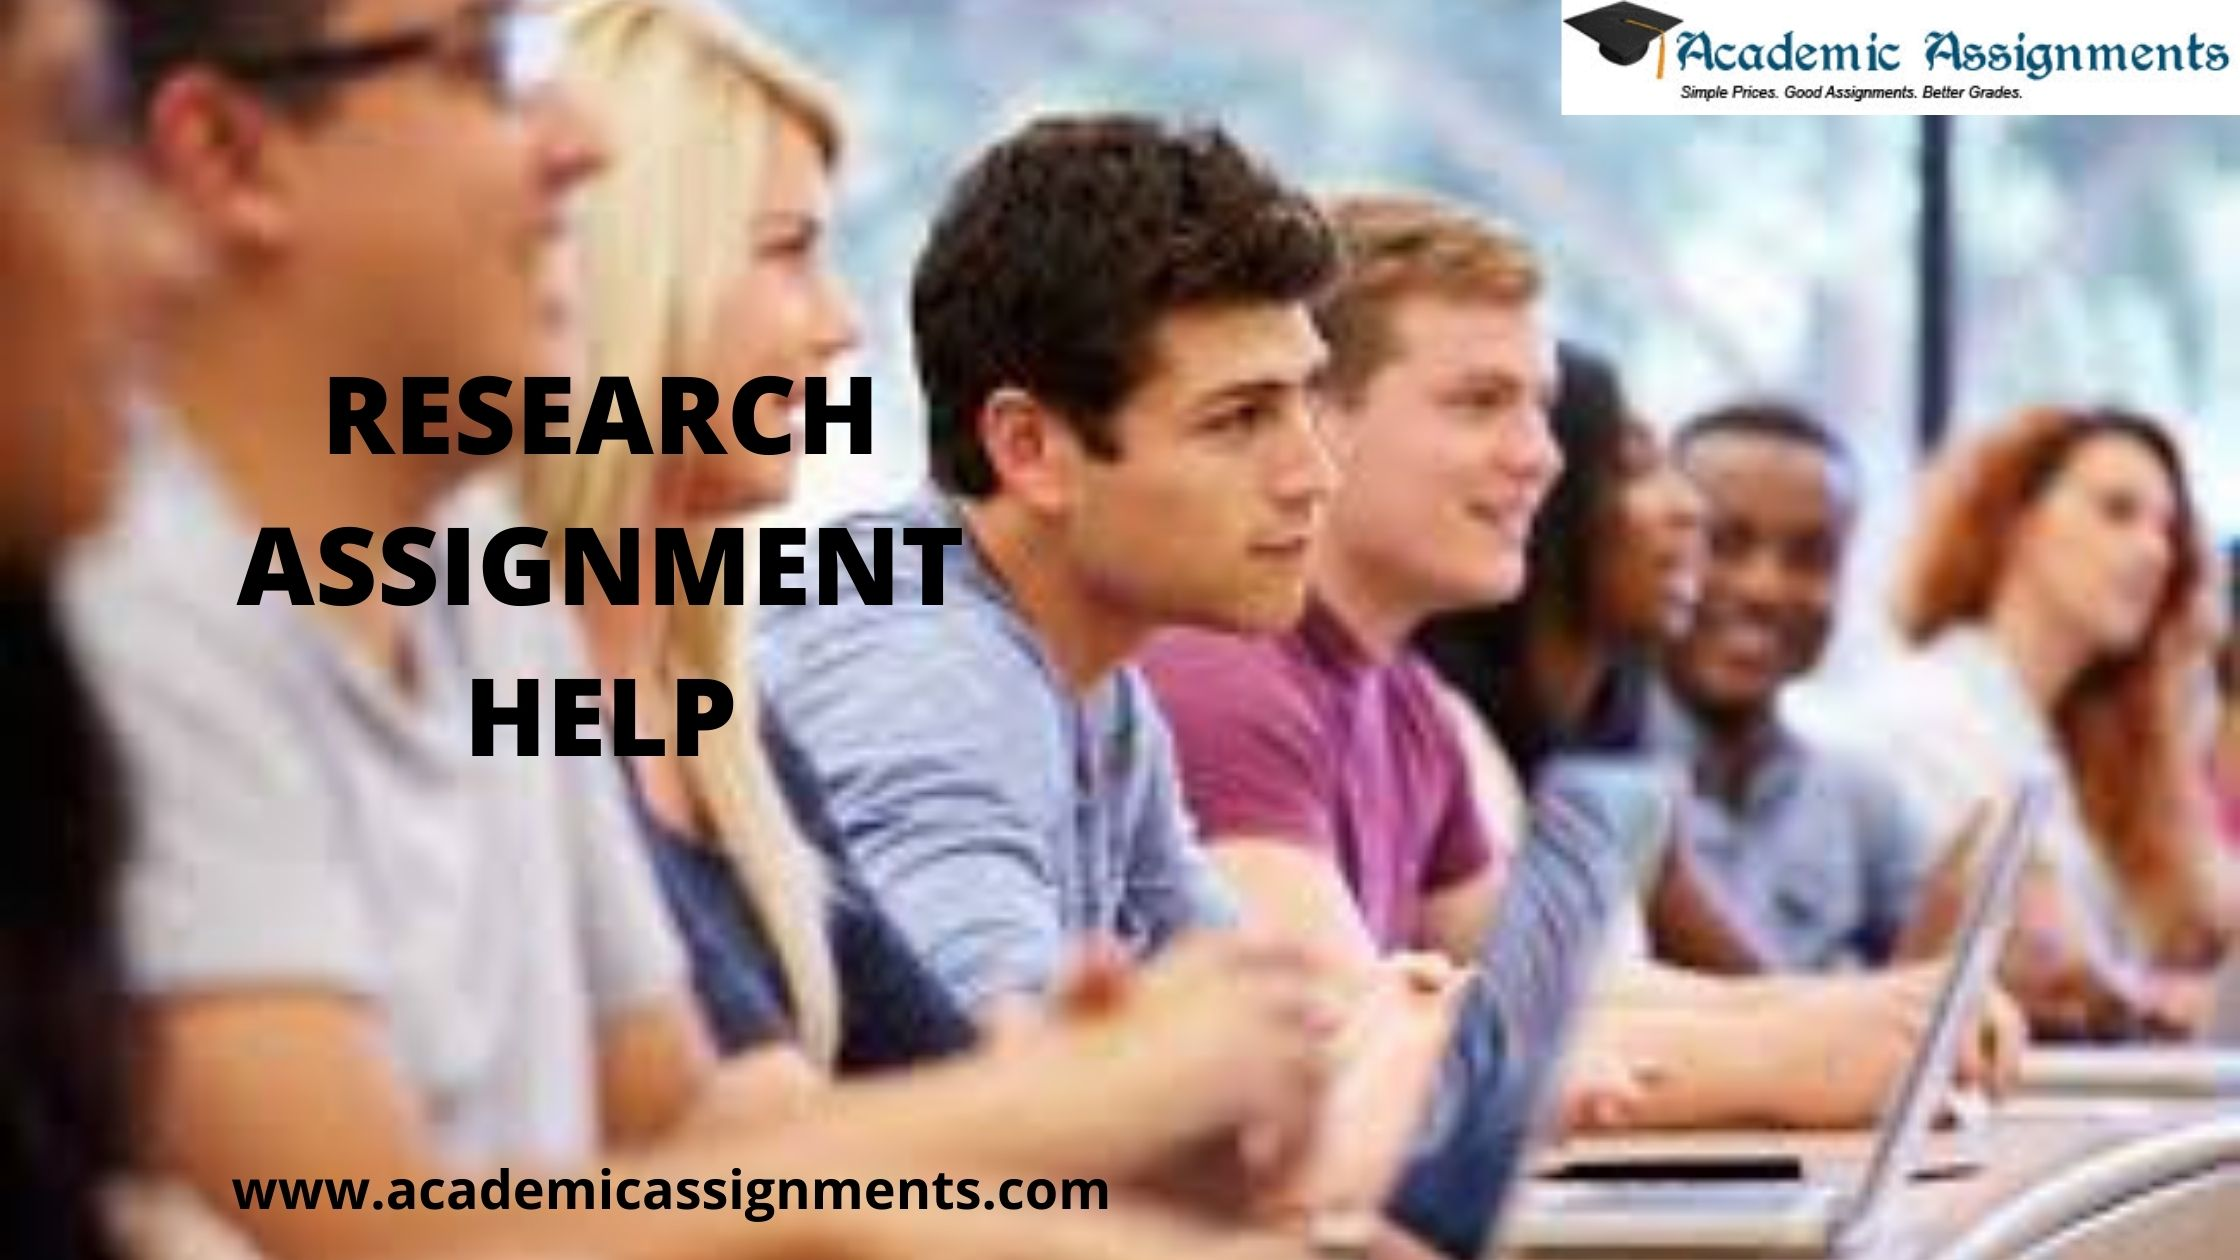 RESEARCH ASSIGNMENT HELP